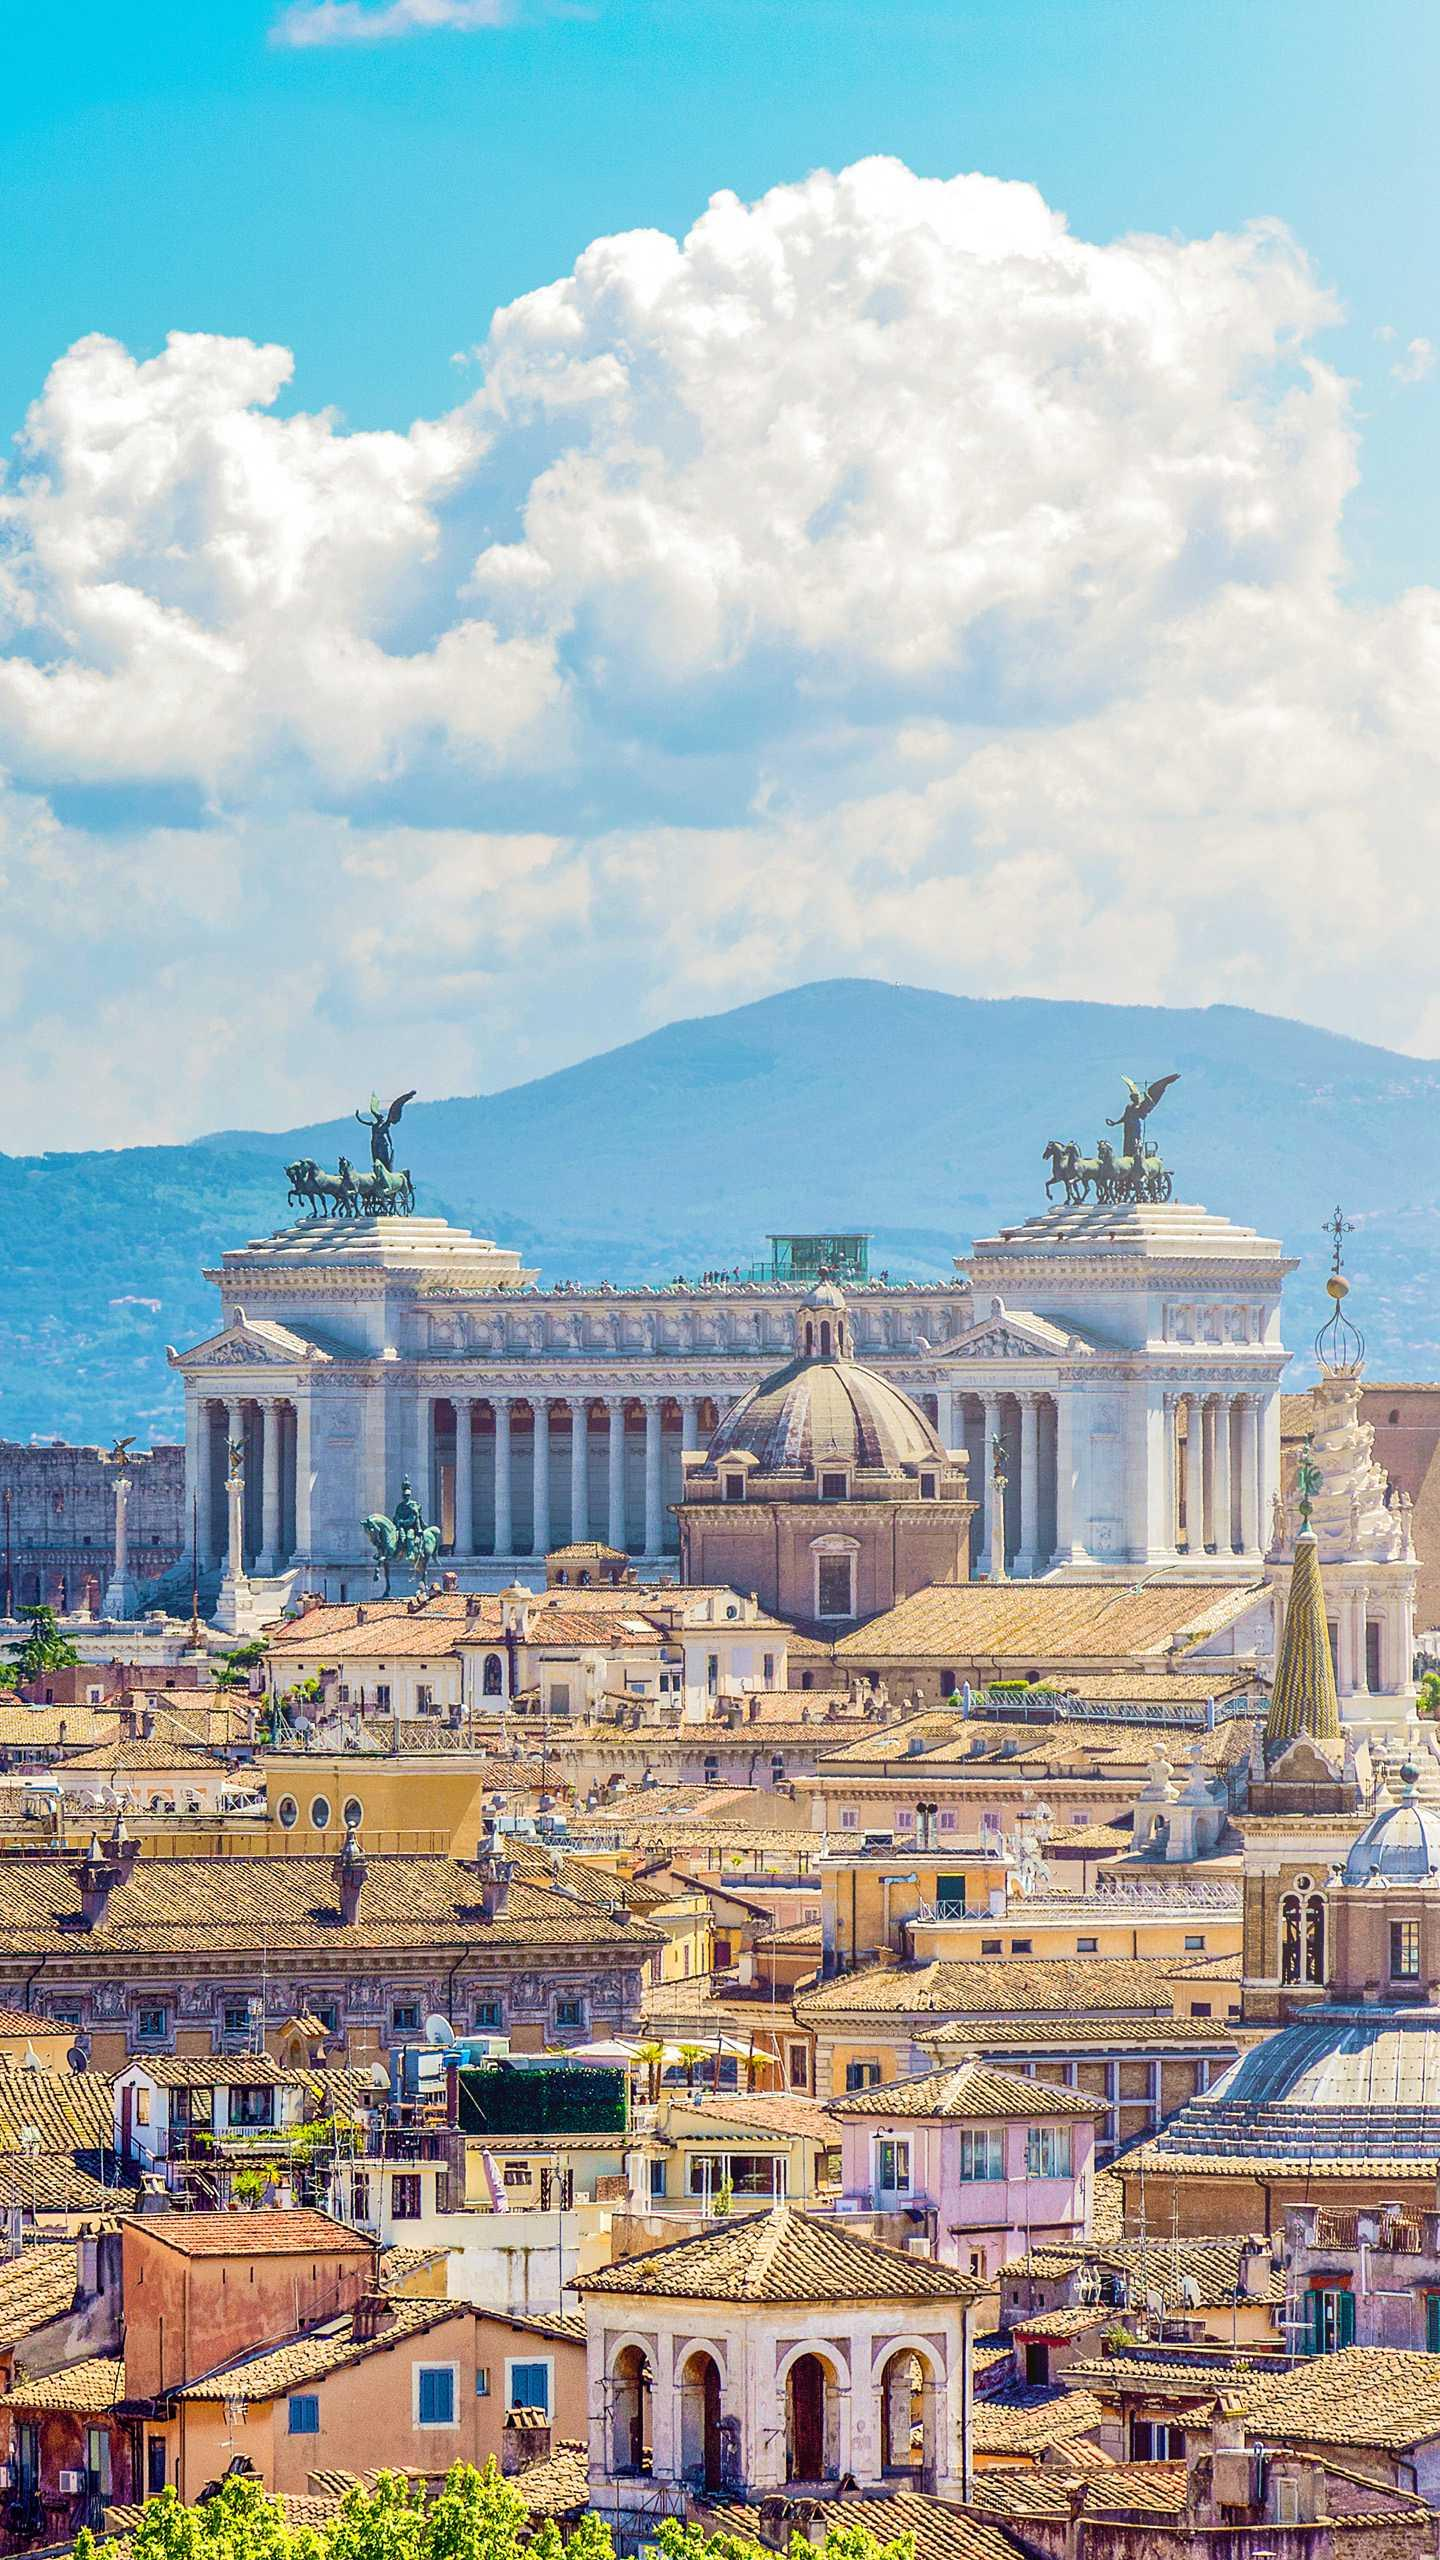 Rome - Piazza Venezia. The largest square in Rome, also the meeting point of the five streets, is magnificent.